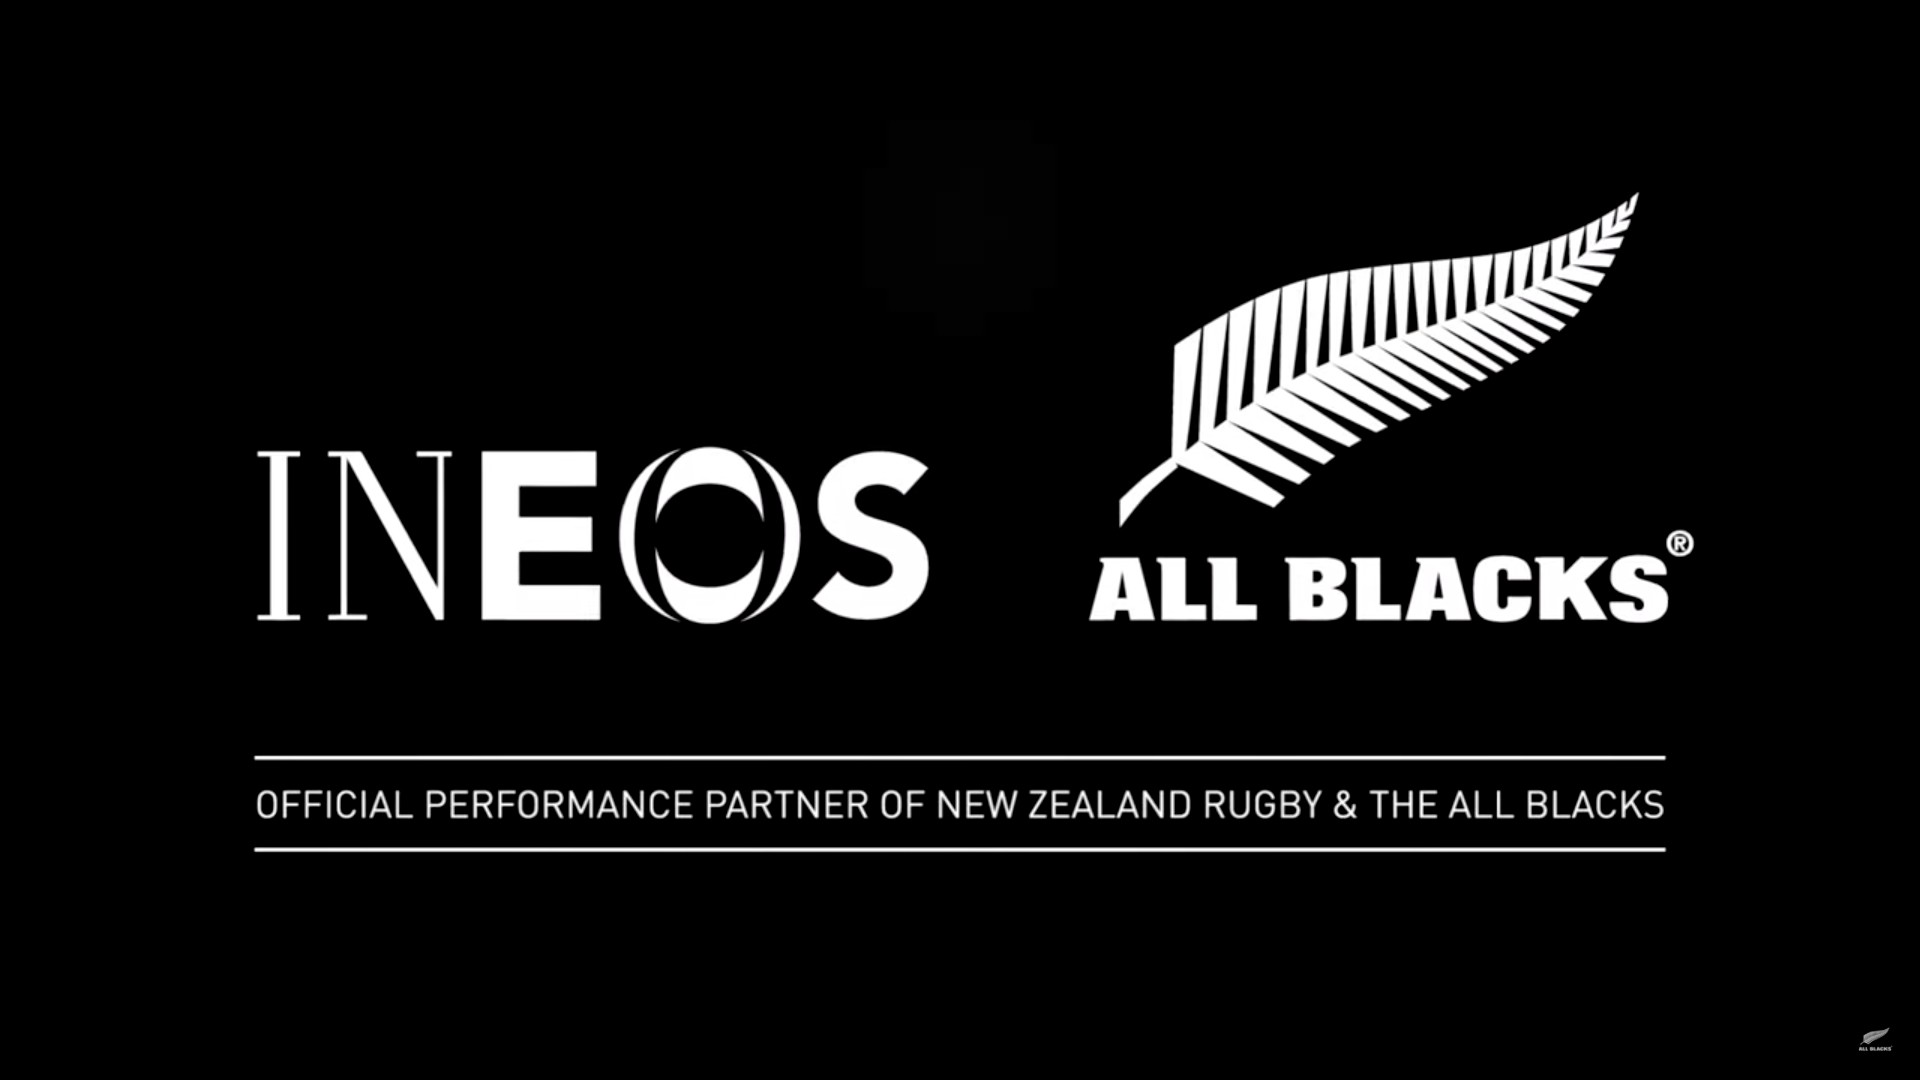 Ineos x All Blacks (rugby) 2021